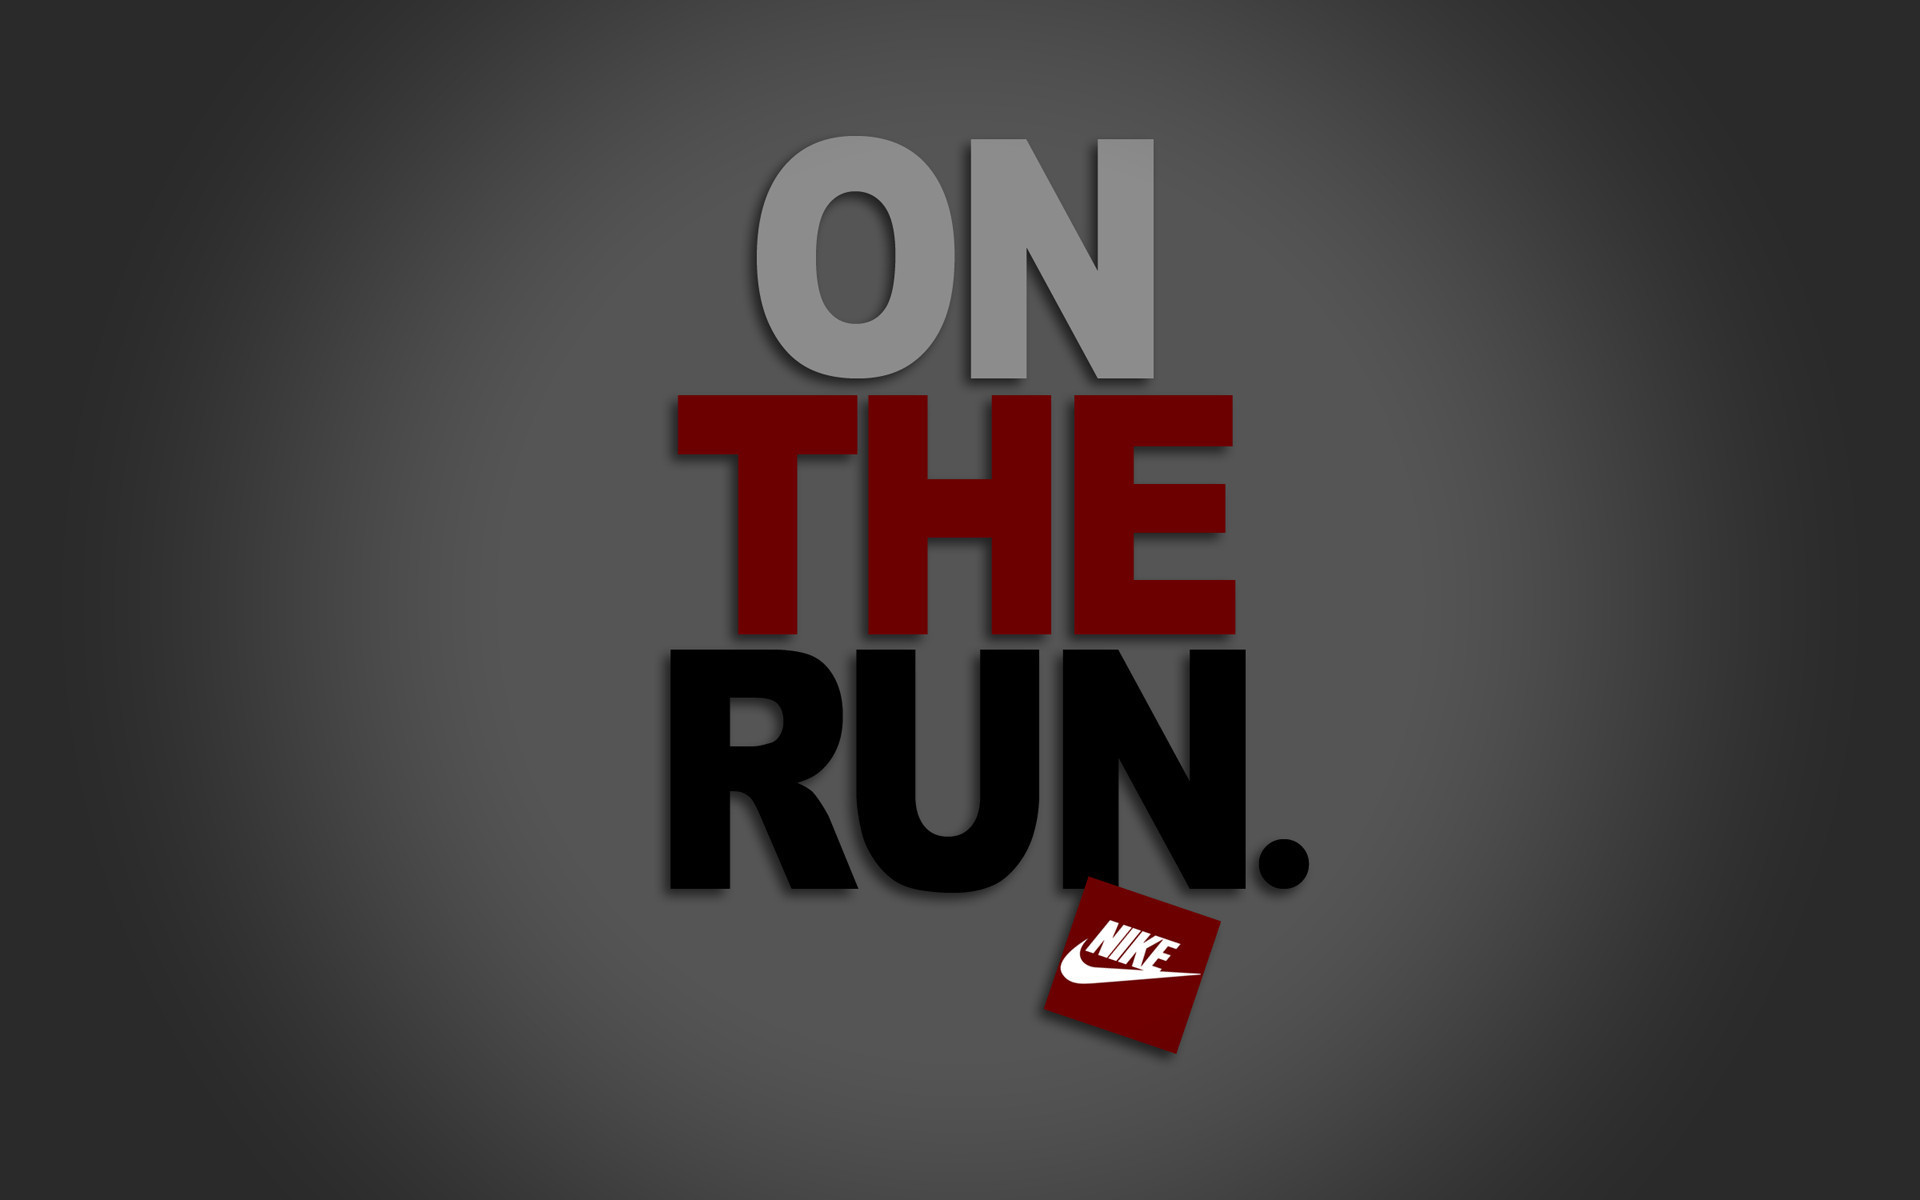 nike-on-the-run-wallpaper-hd-backgrounds-for-